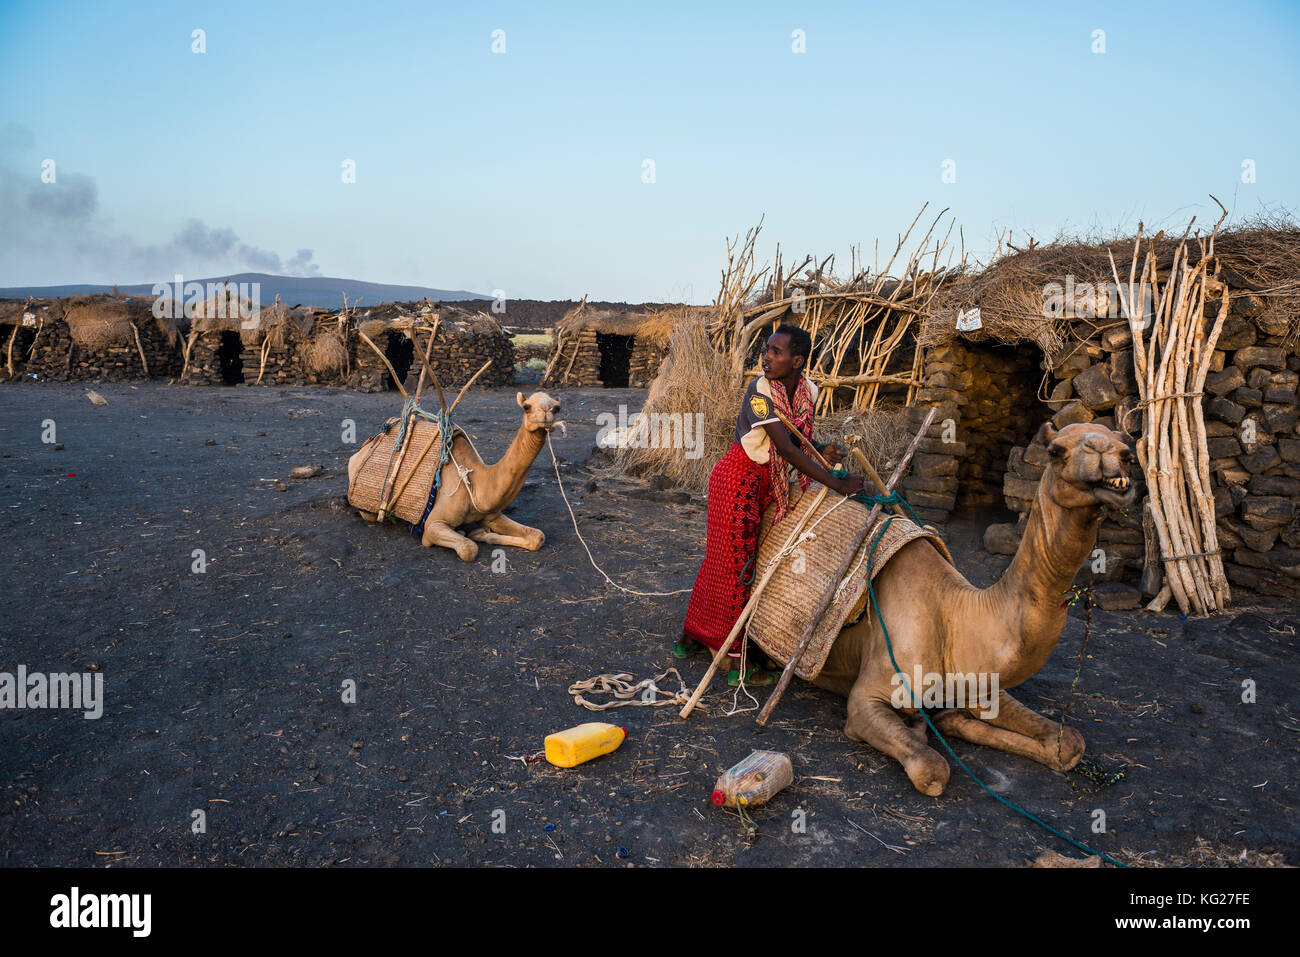 Afar man loading a camel in a camp on the foot of Erta Ale, Danakil depression, Ethiopia, Africa - Stock Image